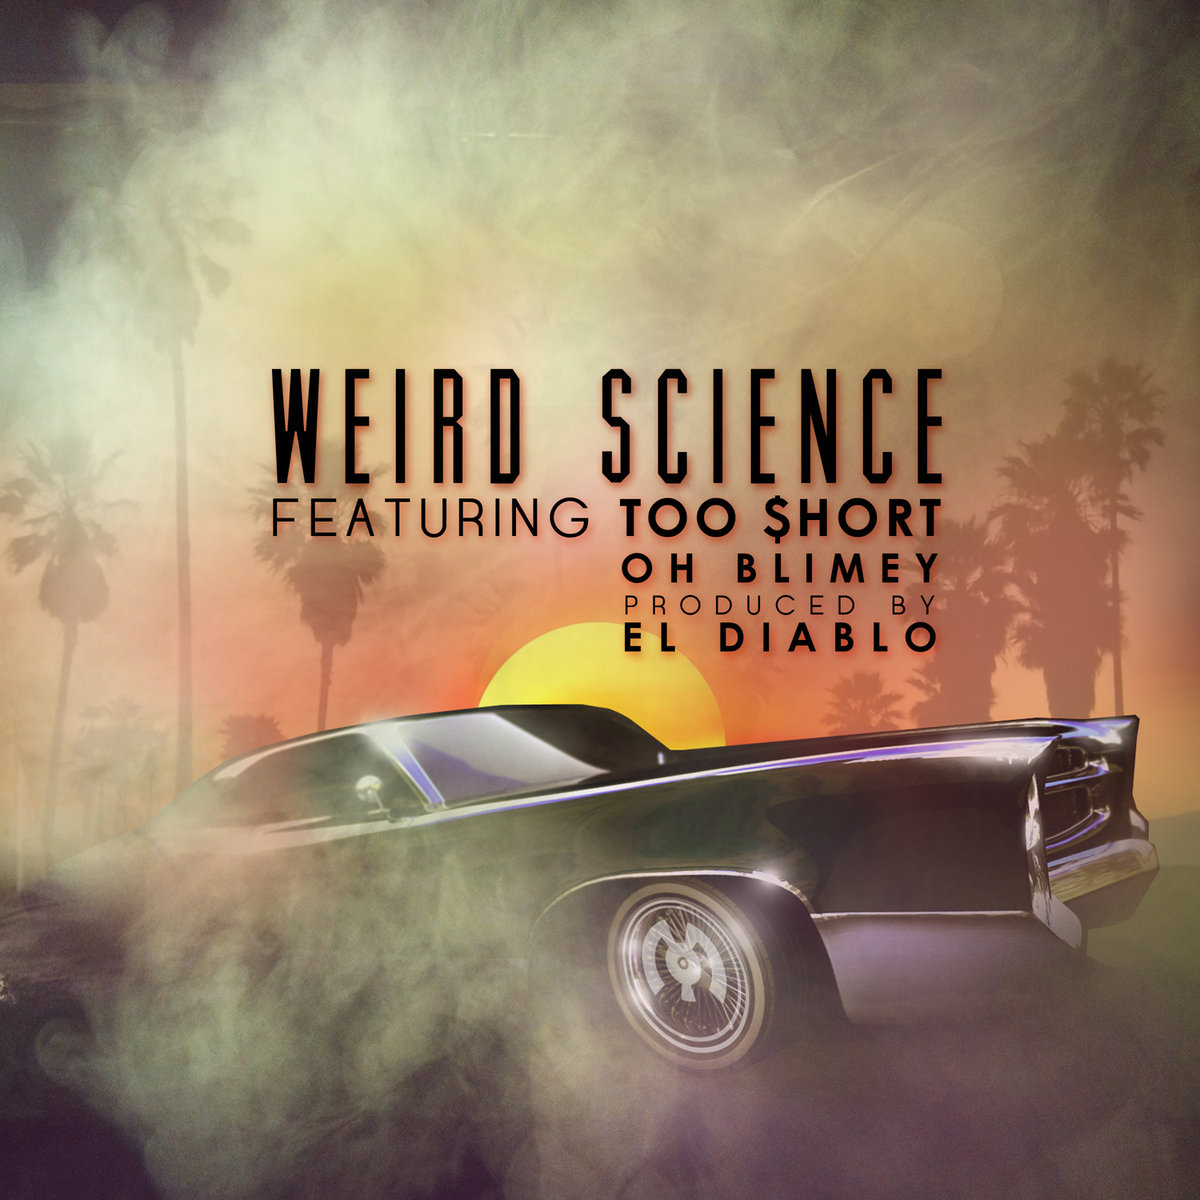 Too $hort, Oh Blimey, El Diablo - Weird Science (Dirt Monkey & Omega Remix) @ 'Weird Science' album (electronic, dubstep)